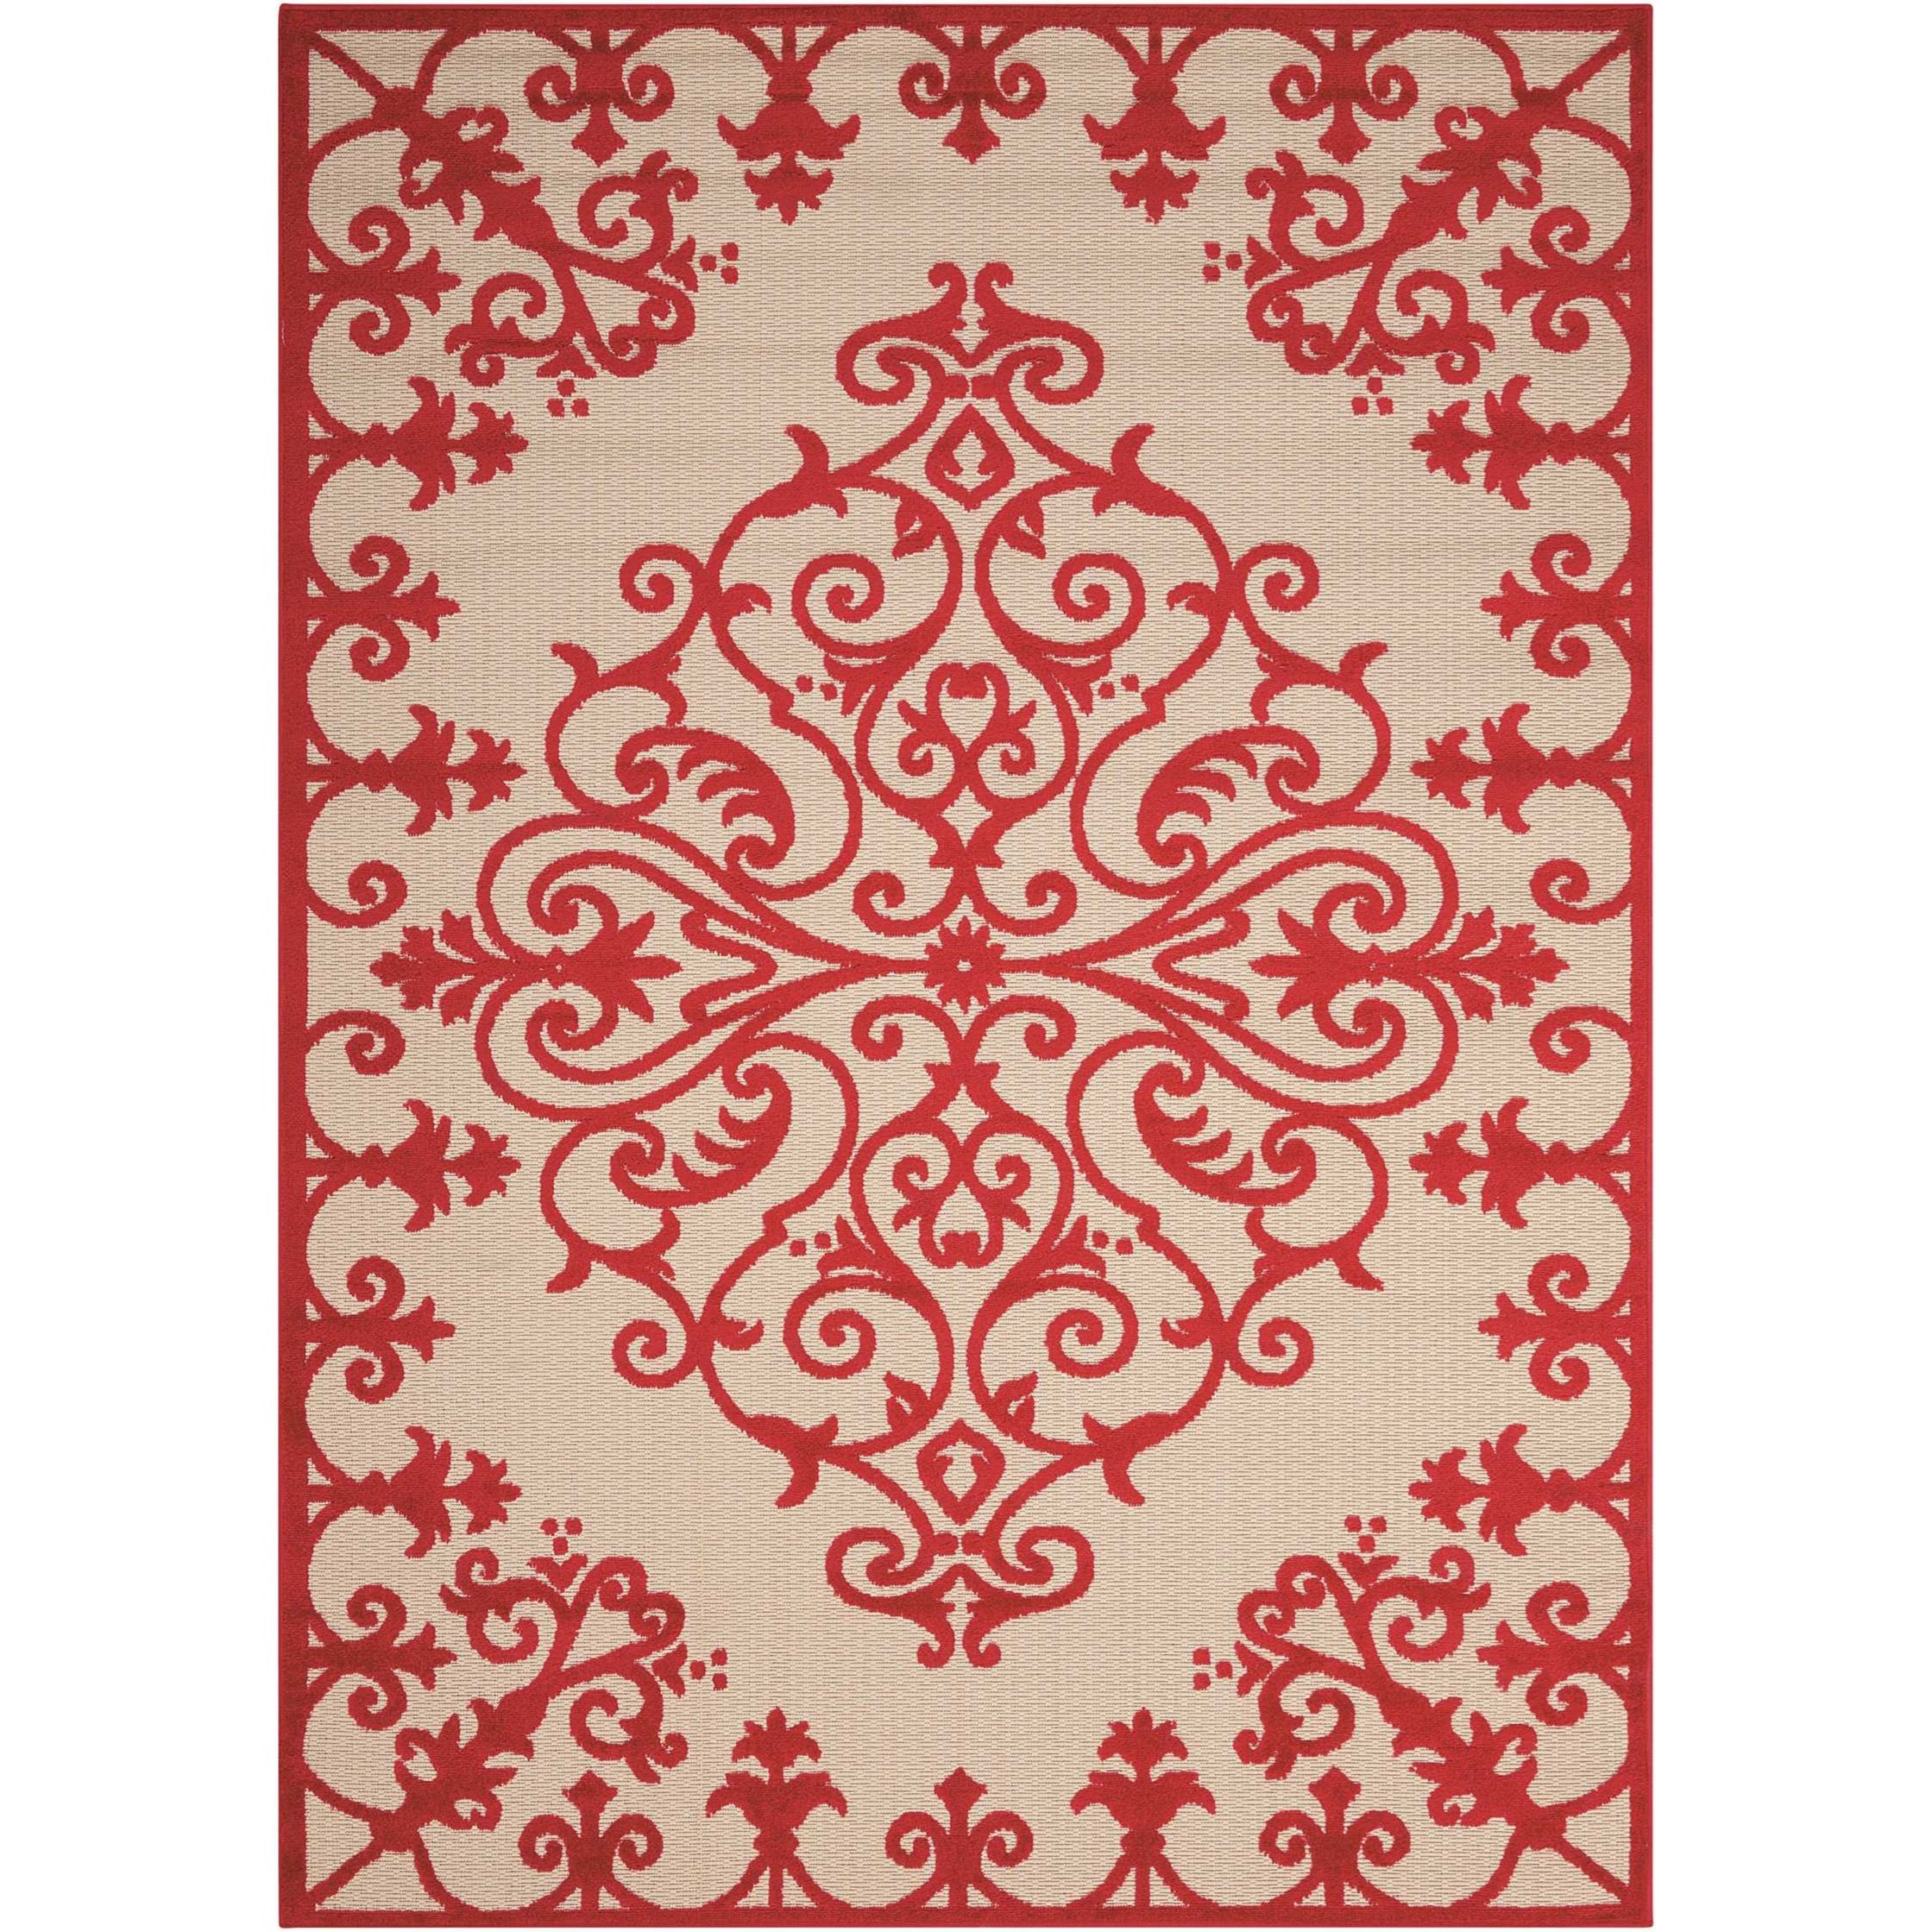 """Aloha 9'6"""" x 13' Red Rectangle Rug by Nourison at Home Collections Furniture"""